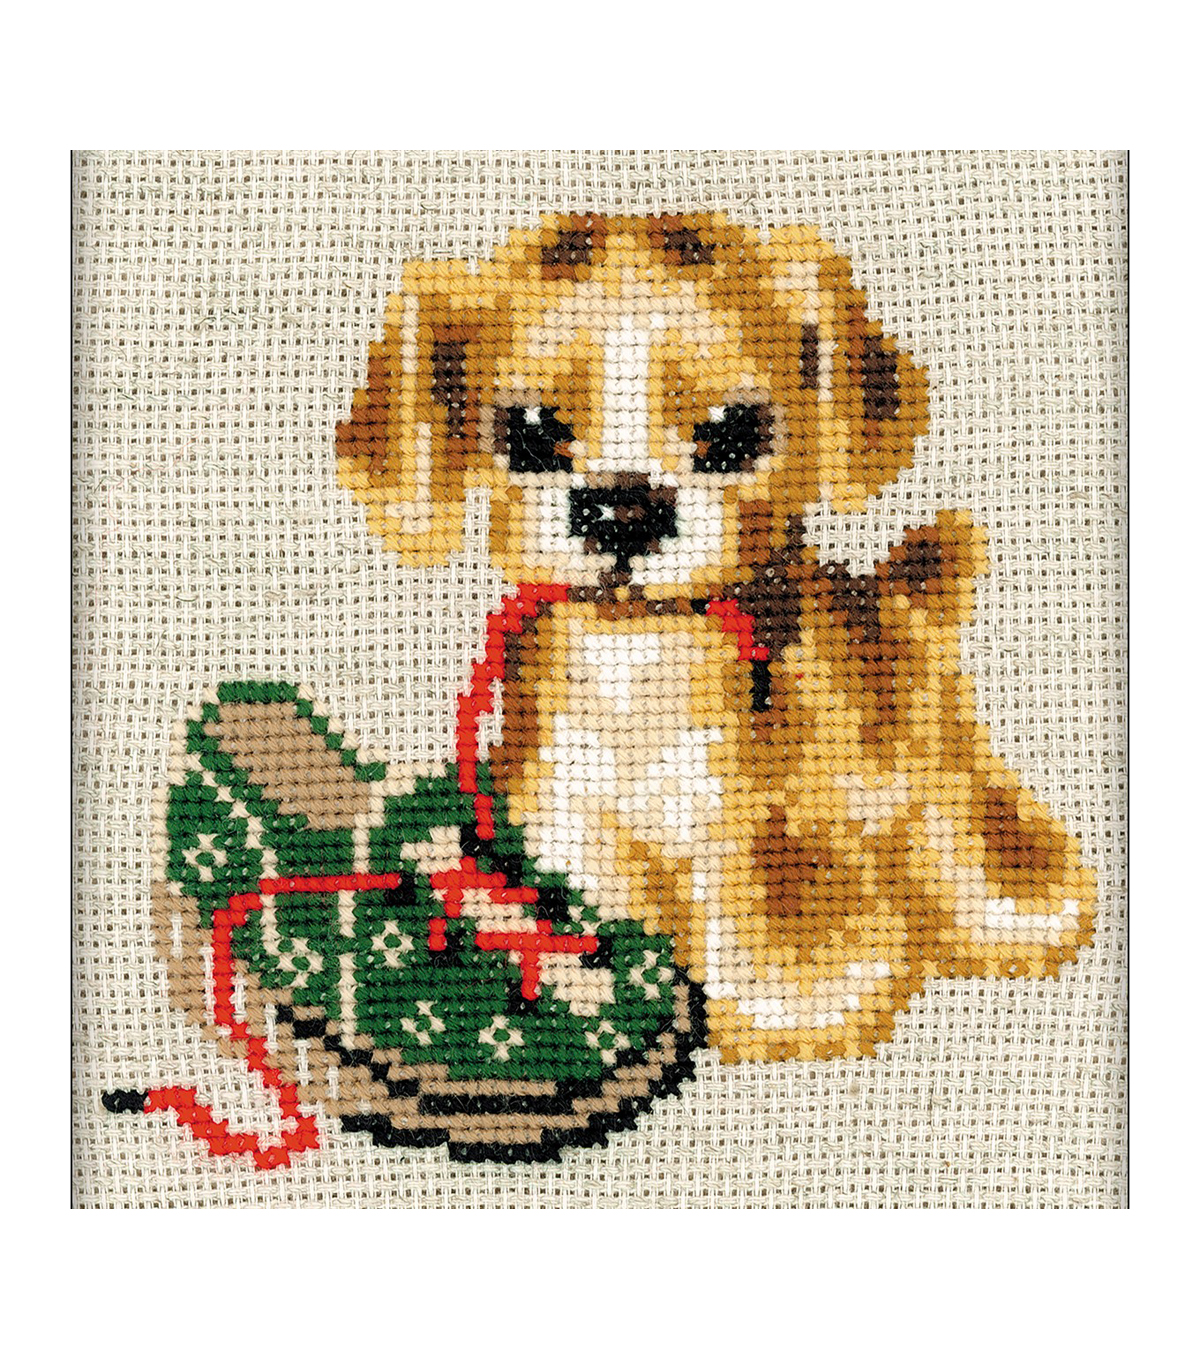 RIOLIS 6\u0027\u0027x6\u0027\u0027 14-count Counted Cross Stitch Kit-Naughty Child